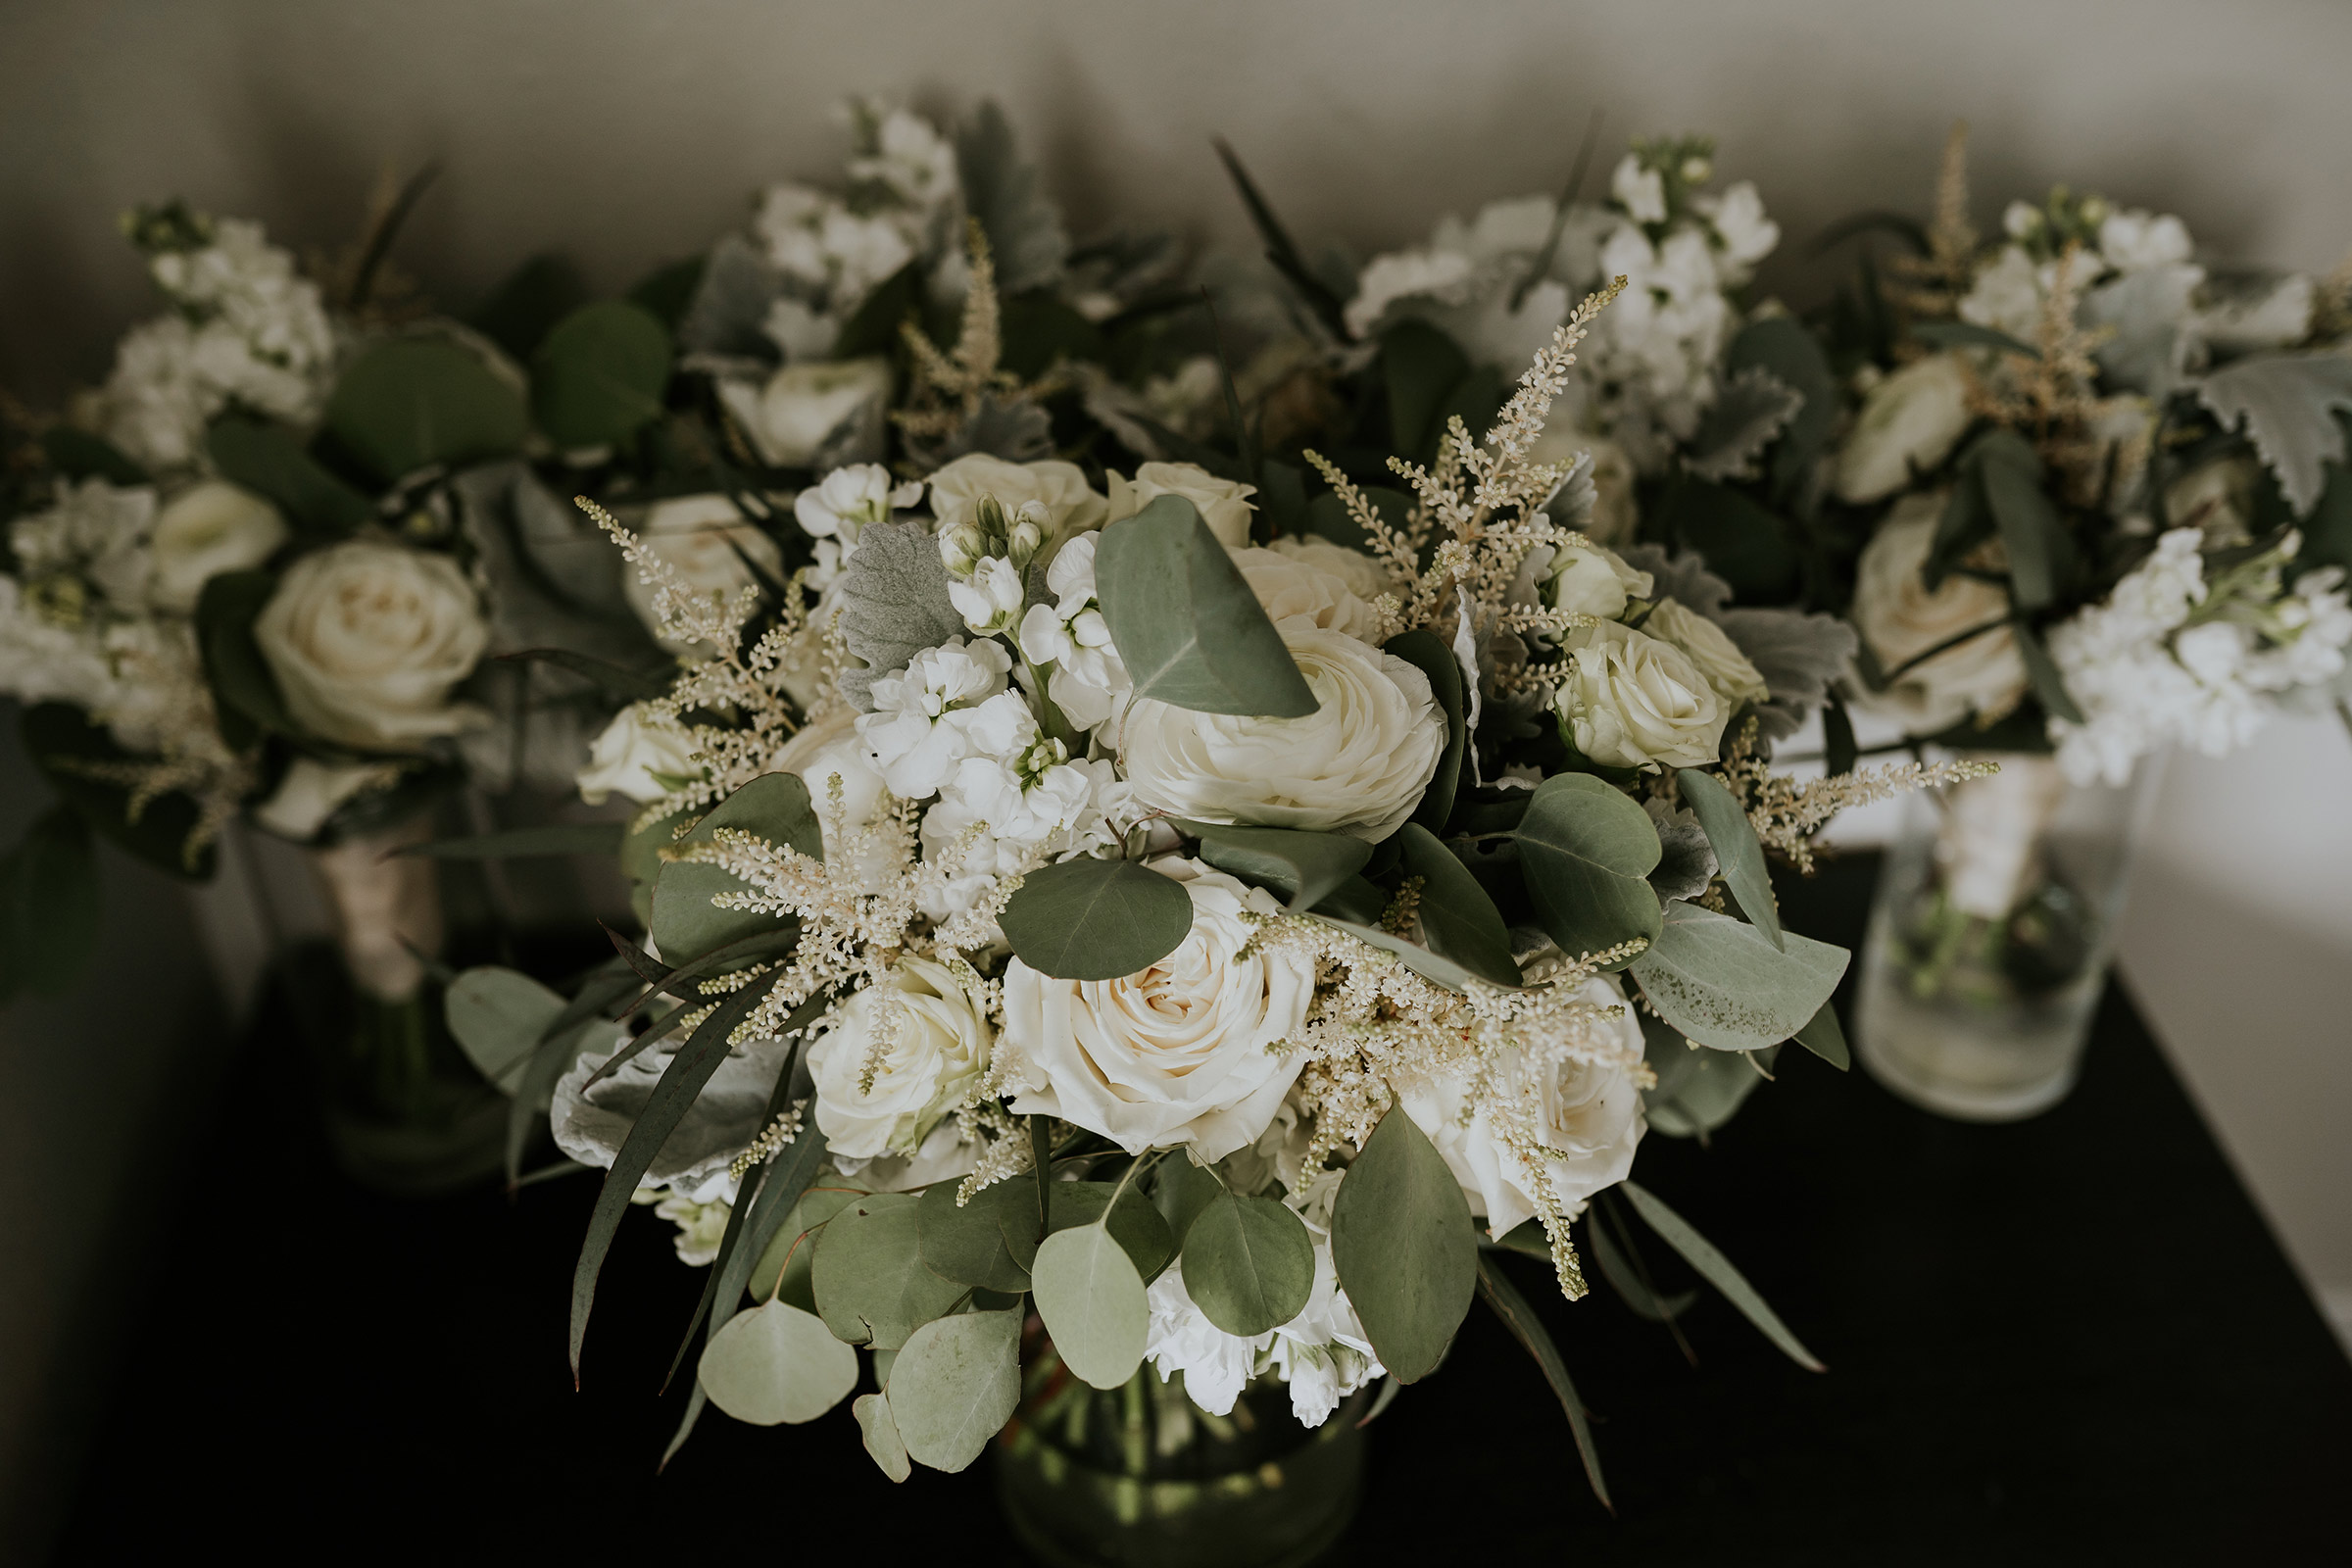 mr-mrs-hull-something-chic-floral-bouquet-desmoines-iowa-raelyn-ramey-photography-12.jpg